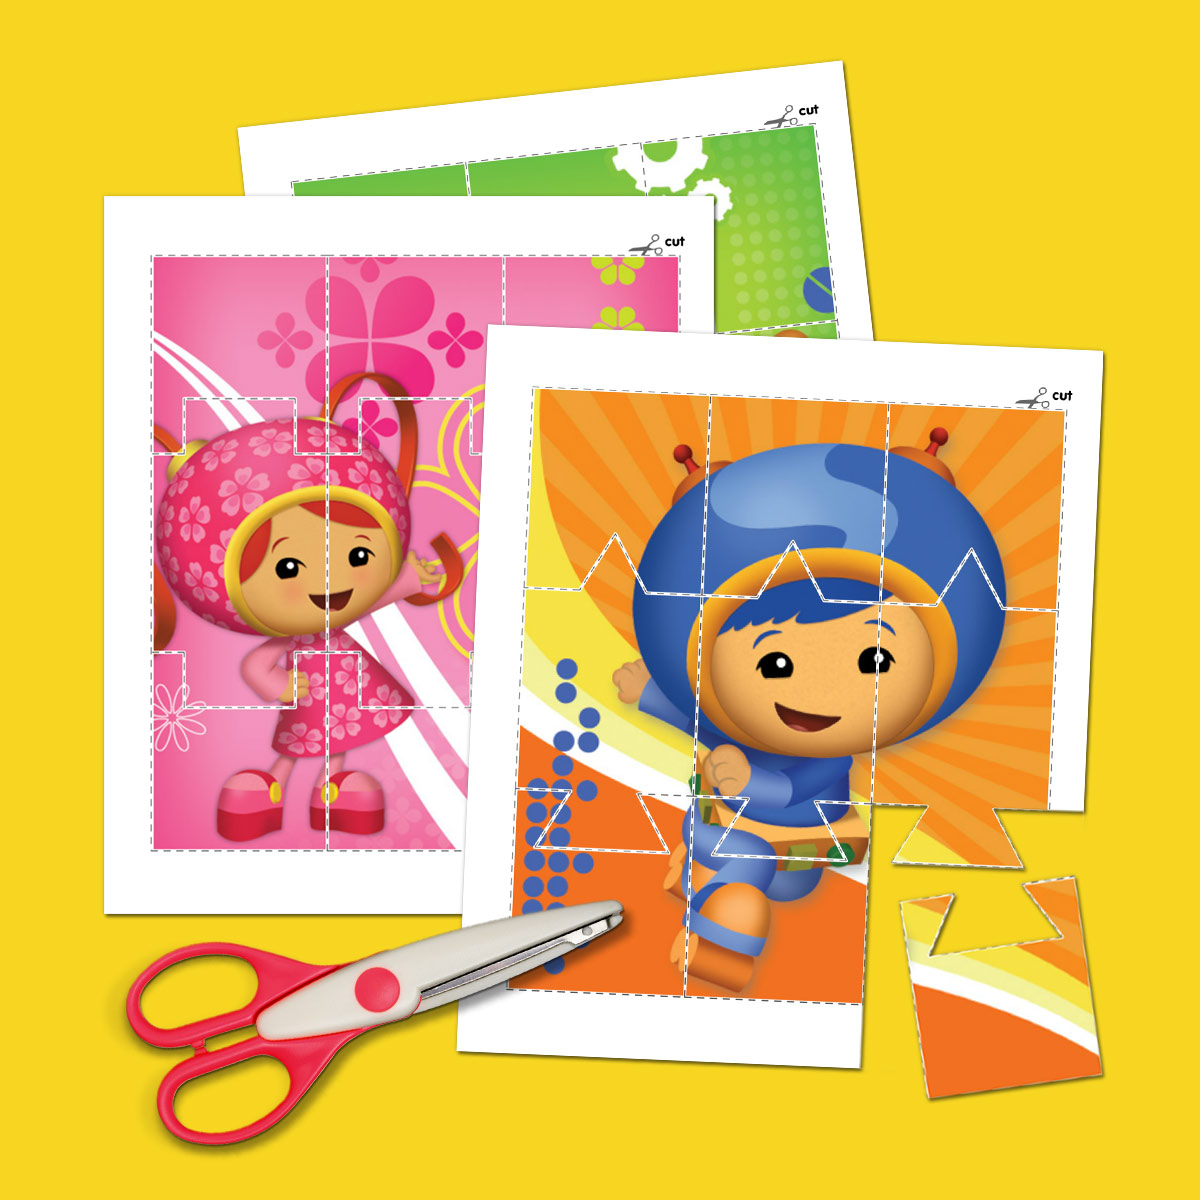 Umizoomi Picture Puzzles